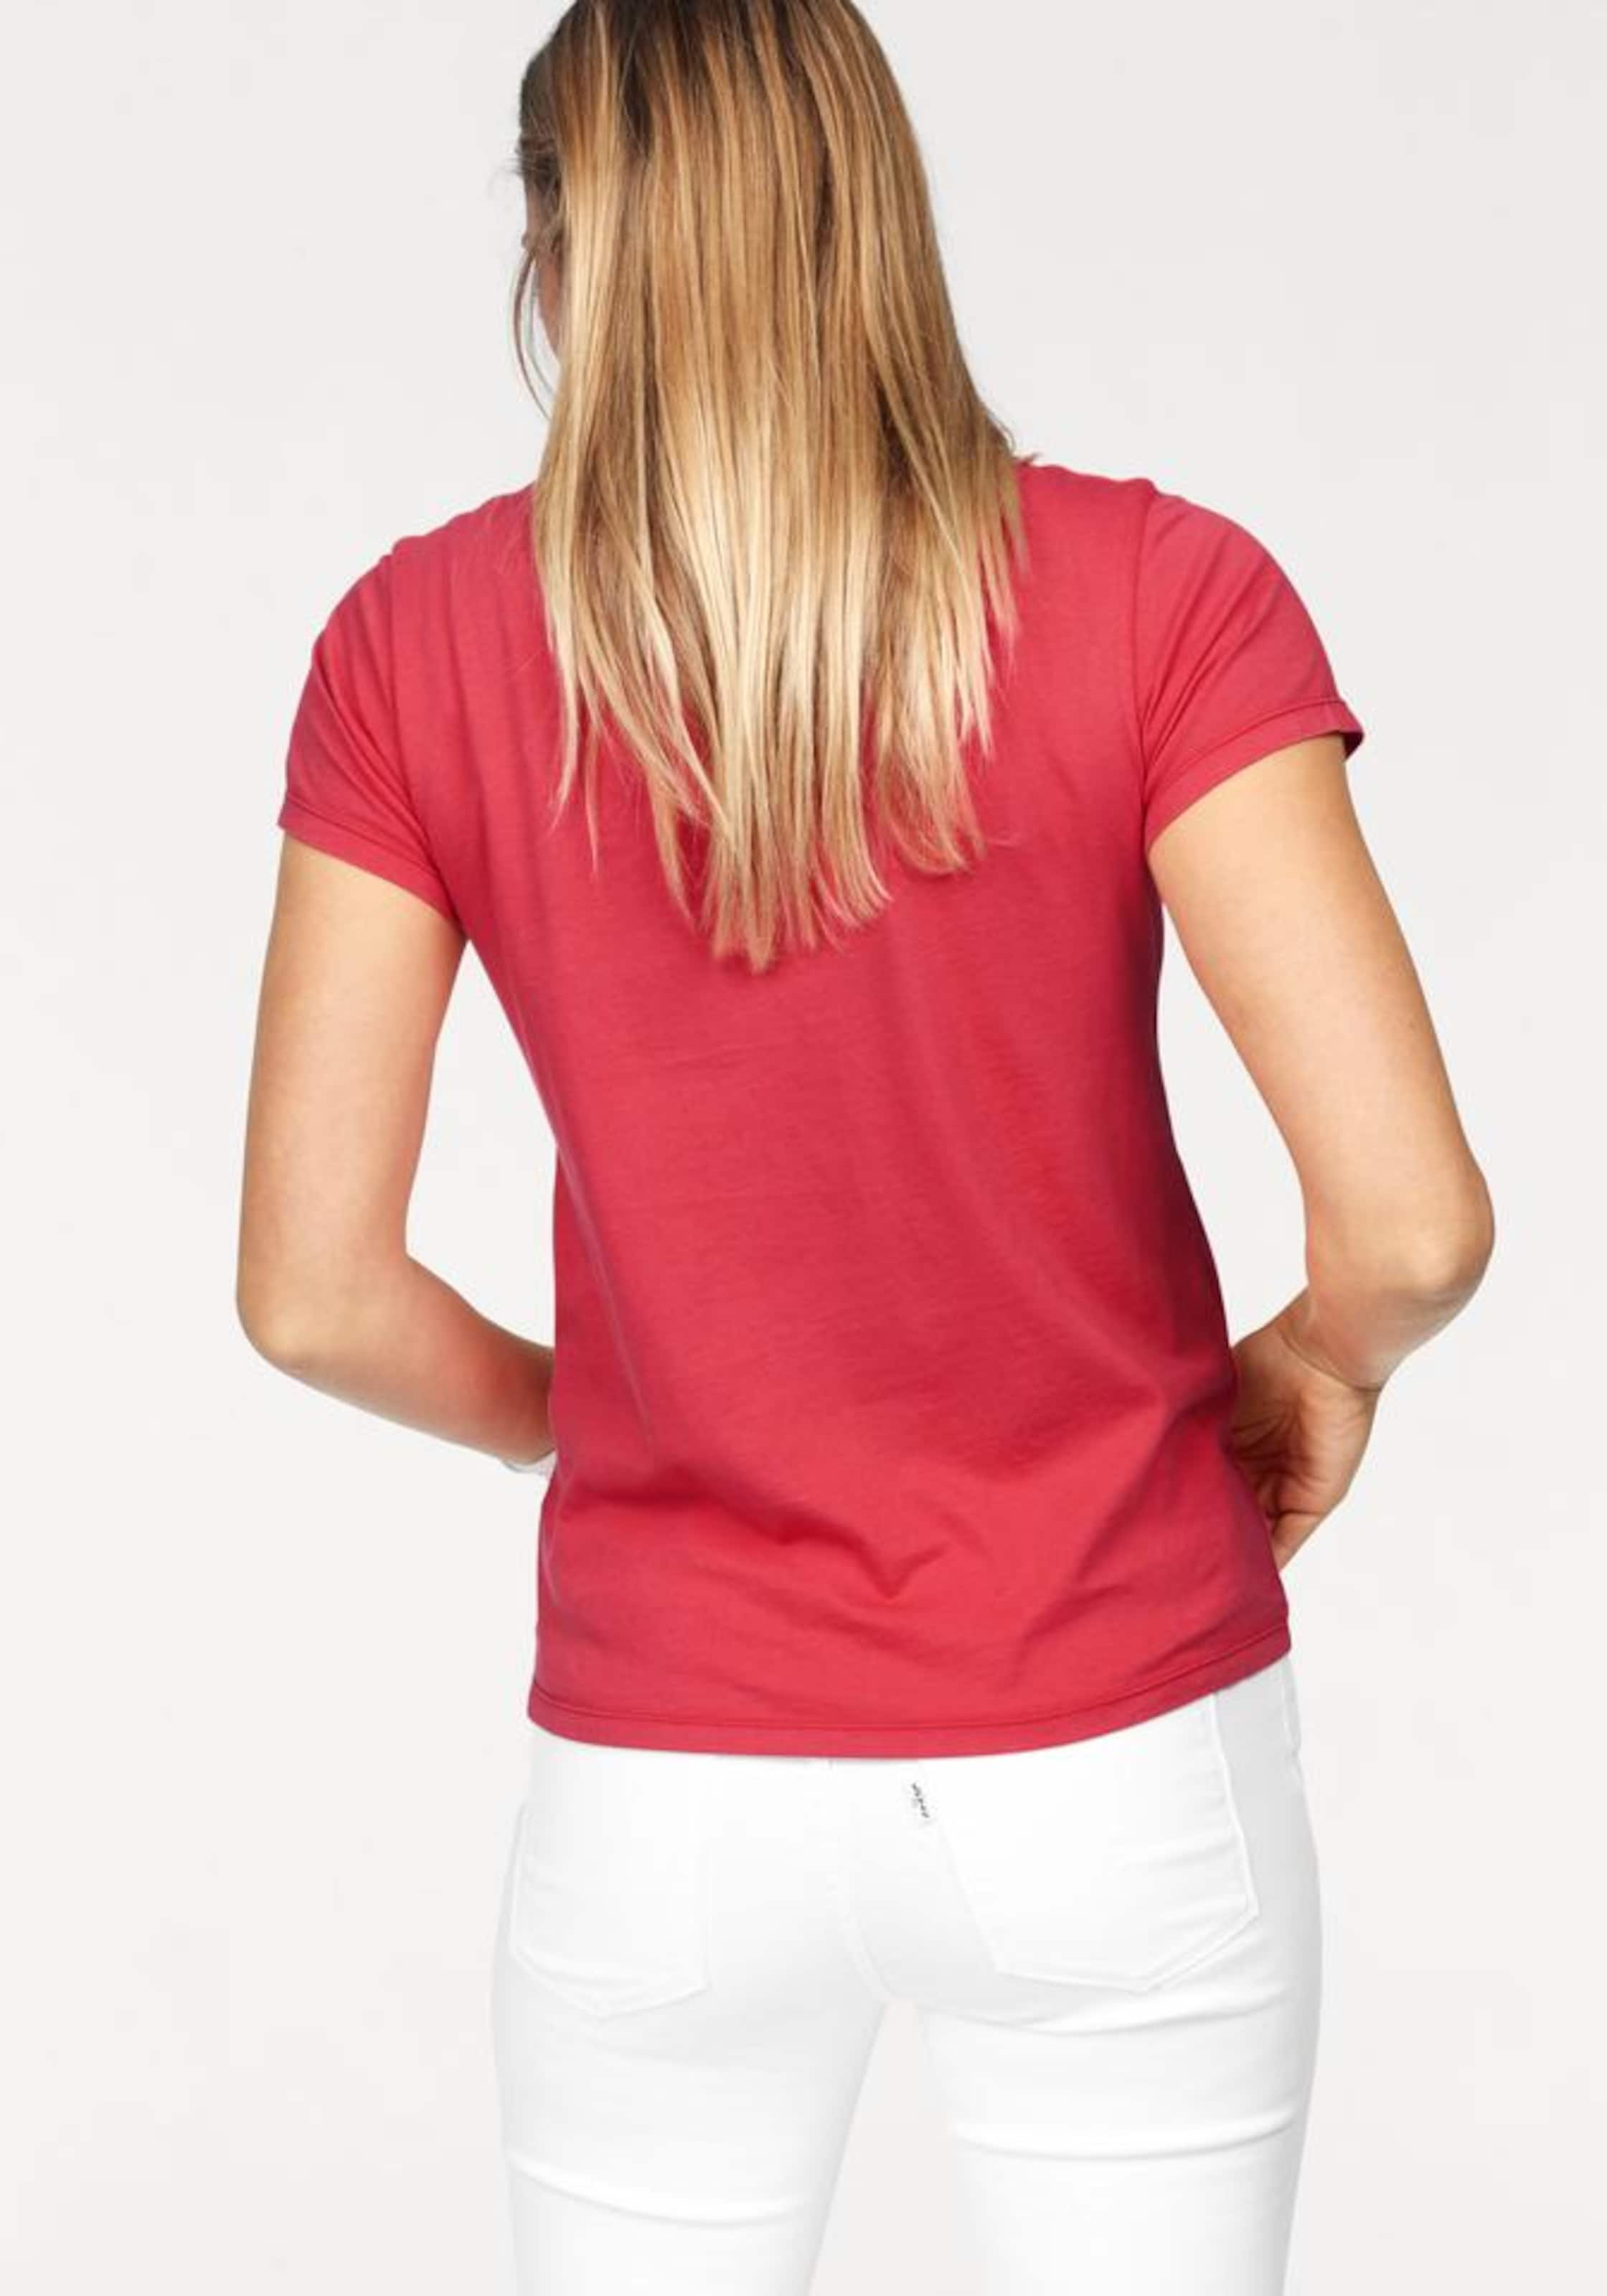 LEVI'S Shirt 'The Perfect Tee Large Batwing' Sehr Günstig Online x2pITG